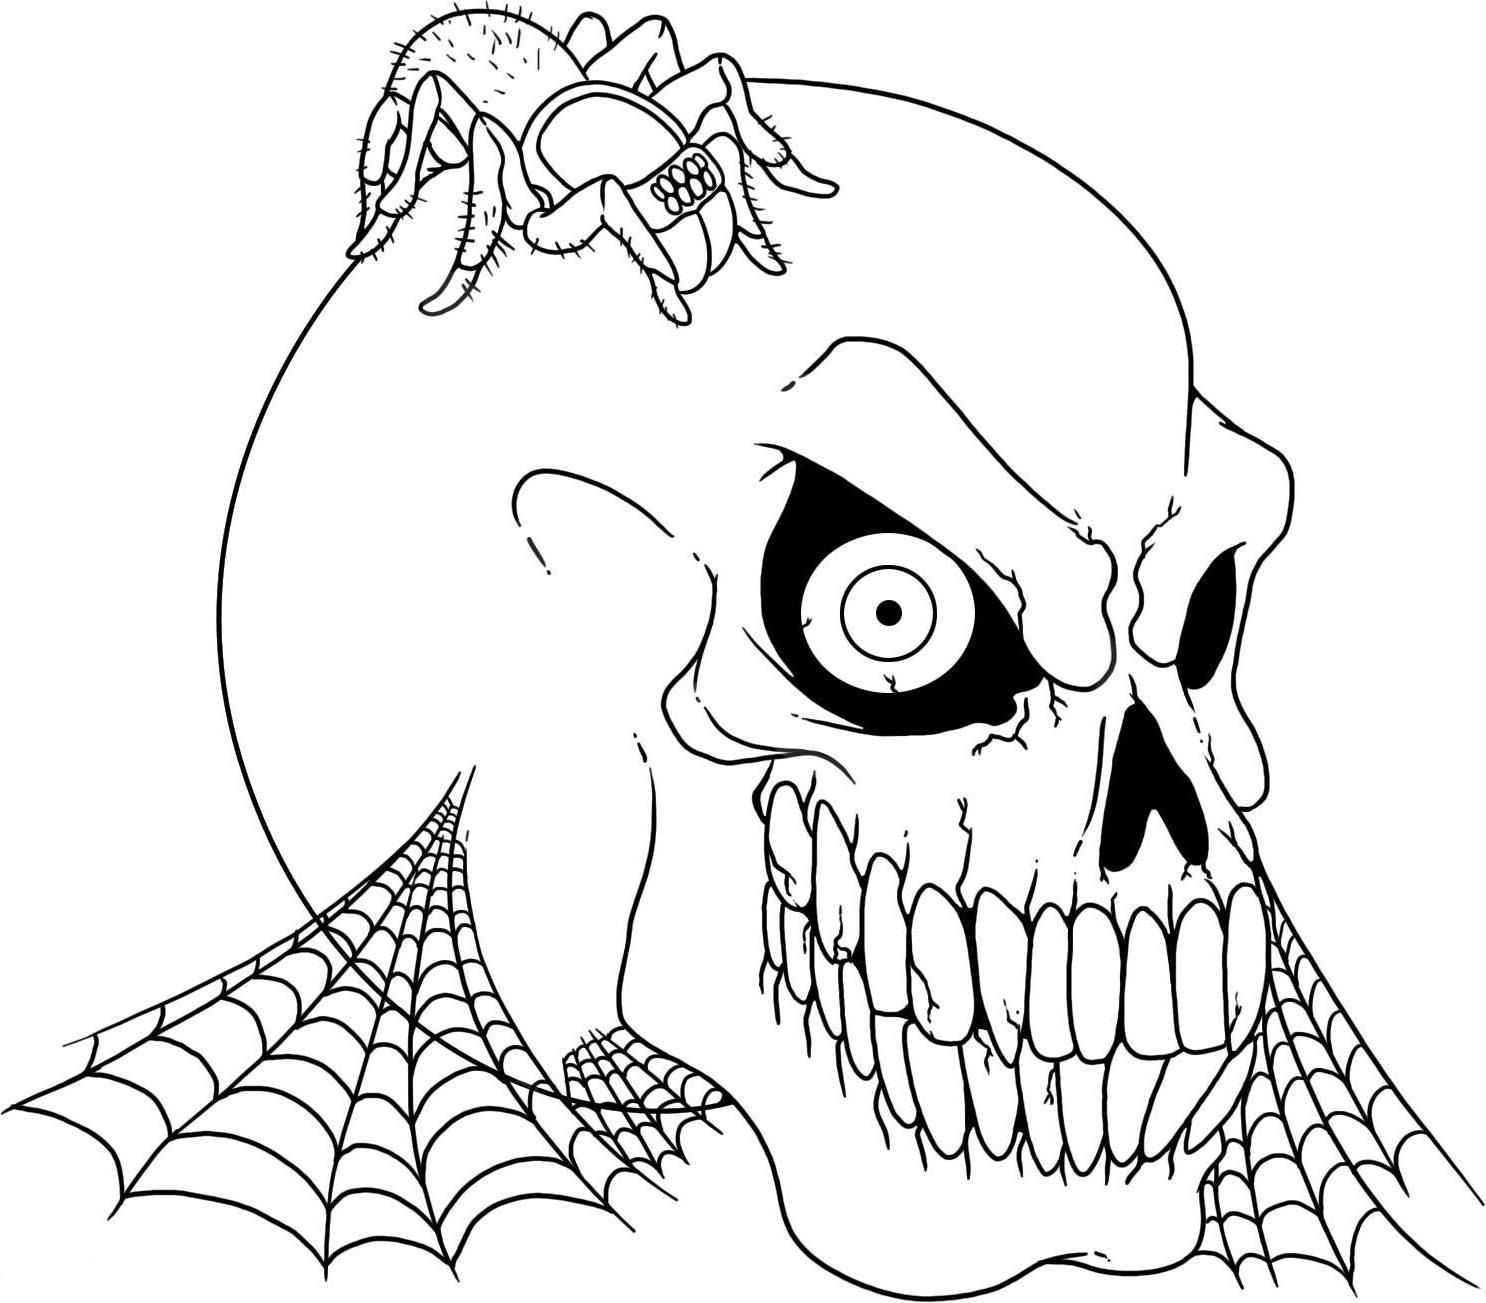 1486x1303 Gallery Scary Halloween Drawings For Kids,